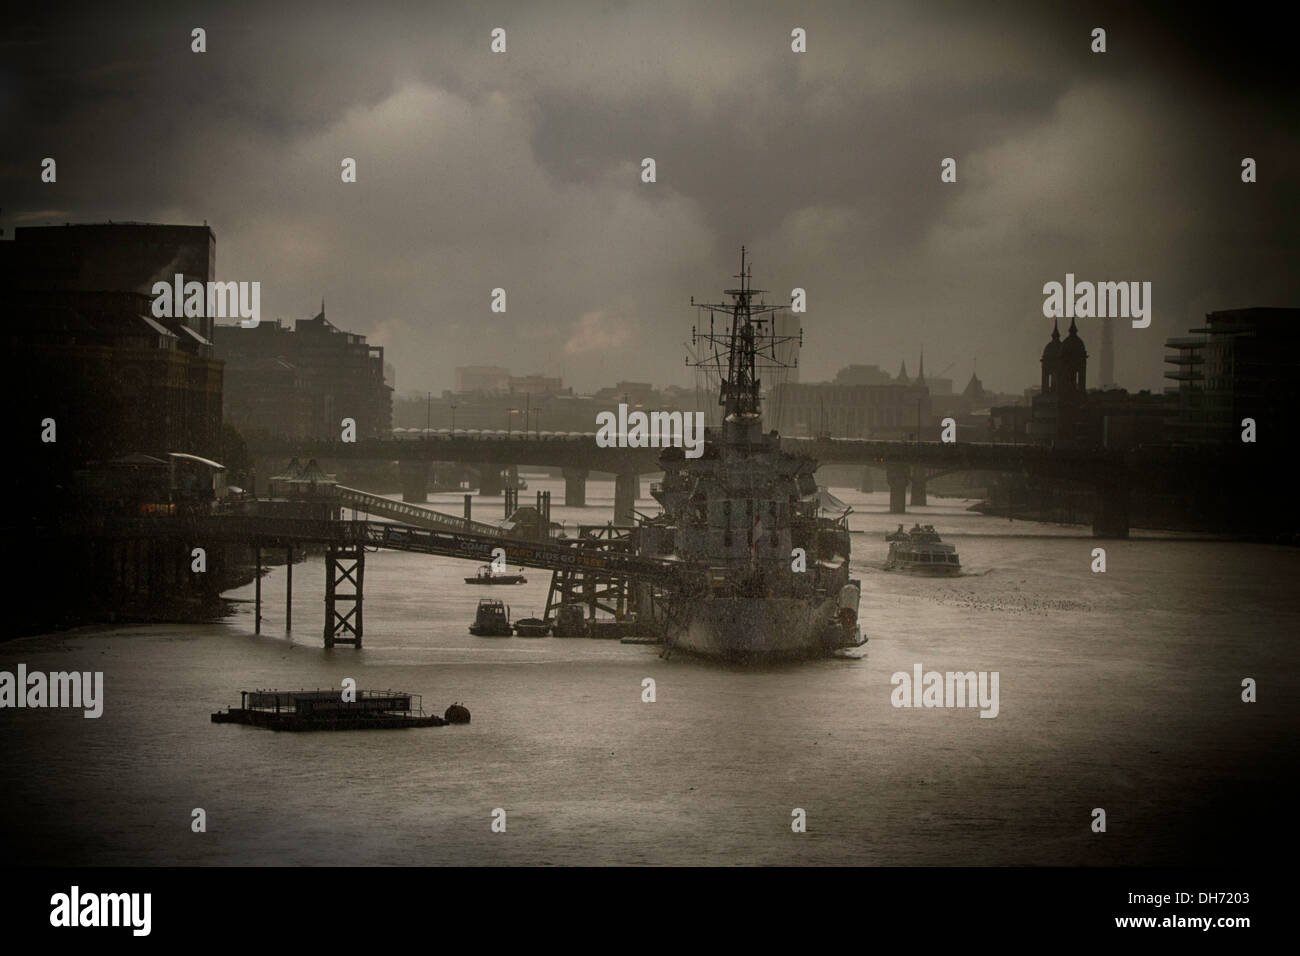 The HMS Belfast moored on the River Thames. - Stock Image